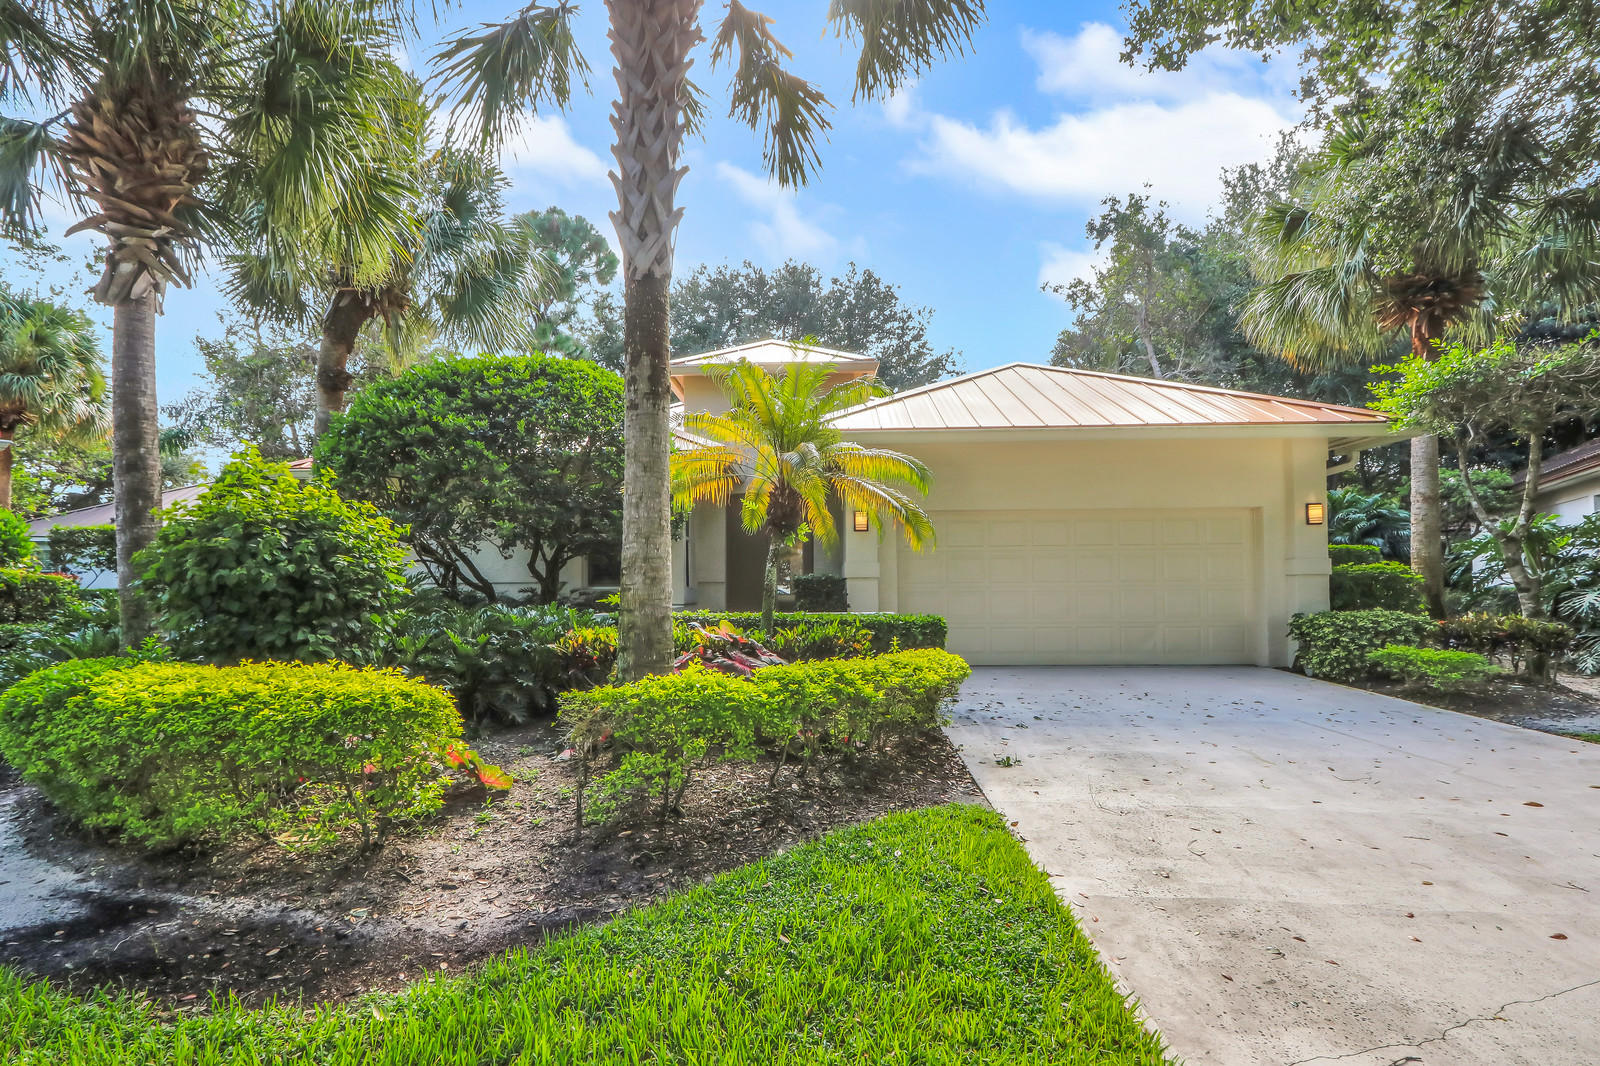 This completely renovated home is located in the prestigious Loxahatchee Club and it features 3 bedrooms & 2.5 bathrooms. Open floor plan, spacious living and dining area, new updated kitchen with custom cabinets, granite countertops and stainless appliances, impact glass throughout, and new porcelain tile flooring throughout. The two guest bedrooms share a Jack & Jill bathroom. The large master bedroom has his and her closets and the beautiful master bathroom has river stone tile and custom cabinetry. Enjoy your private backyard and large covered patio with motorized phantom screens. The Loxahatchee Club was awarded as one of the top 100 Platinum Clubs of the World for 2020-21!  Platinum status is the most revered and respected recognition for Private Clubs around the world. Loxahatchee Club is a premier golf course community and consists of almost 300 residential homes, with state-of-the-art amenities including a grand clubhouse, world class fitness center, heated lagoon style swimming pool, 3 hydro grid tennis courts, private Pilates training room, and the Famous Jack Nicklaus Golf Course.